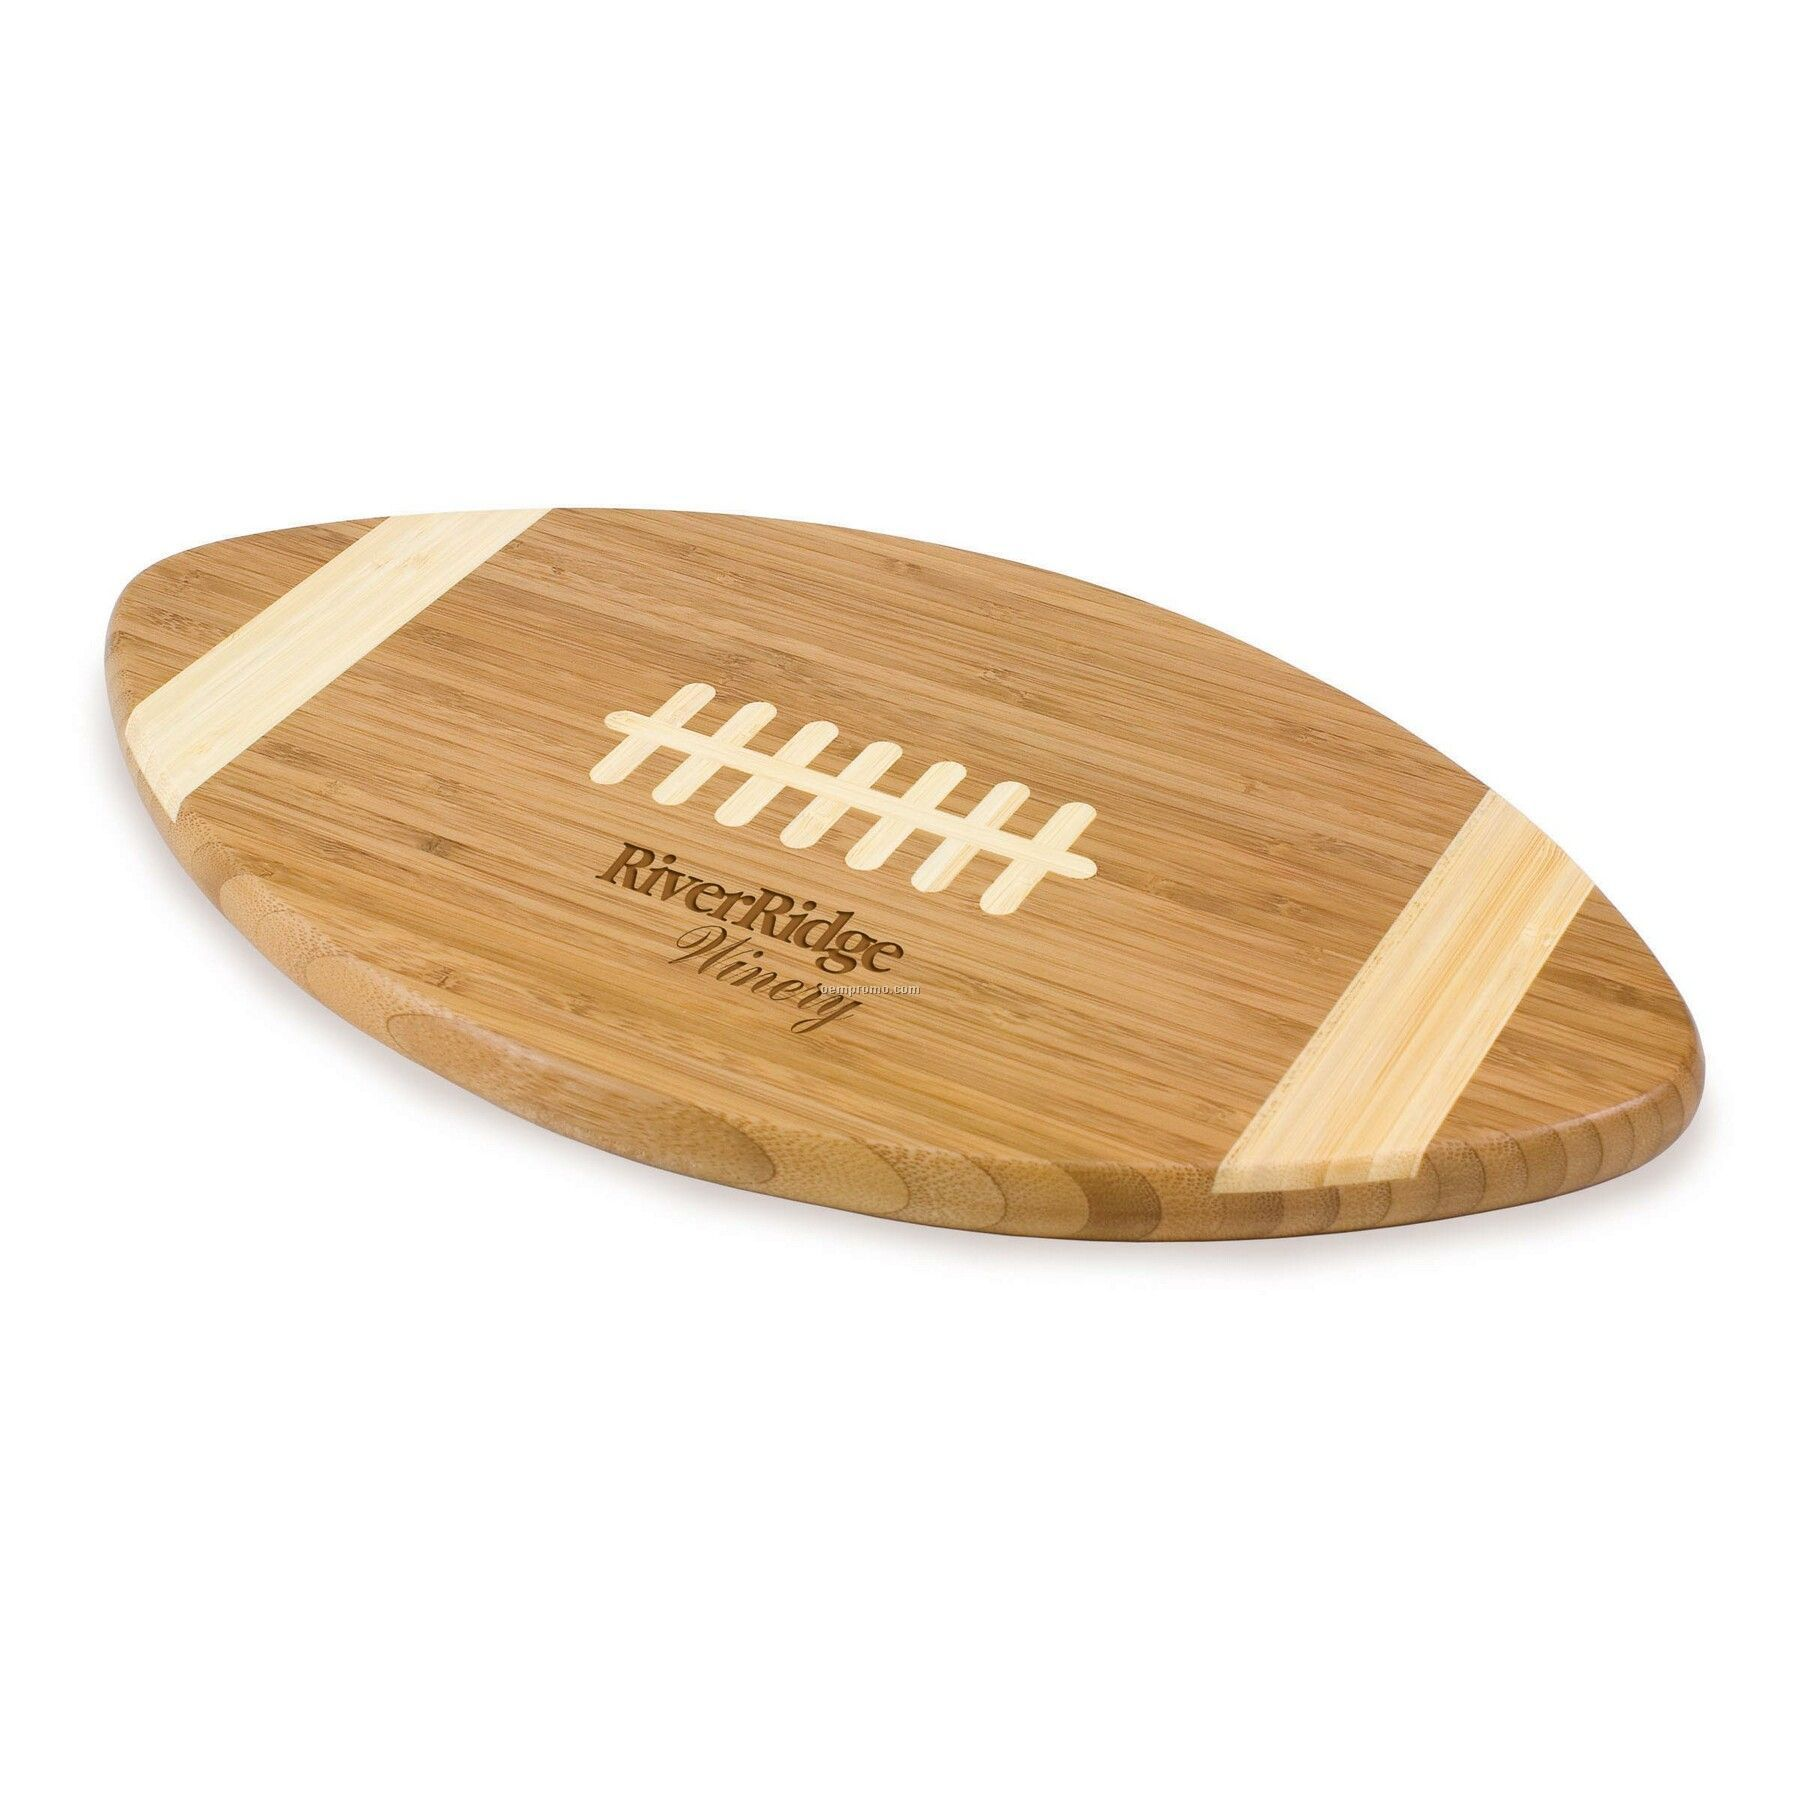 Touchdown Football Shaped Bamboo Cutting Board / Serving Tray